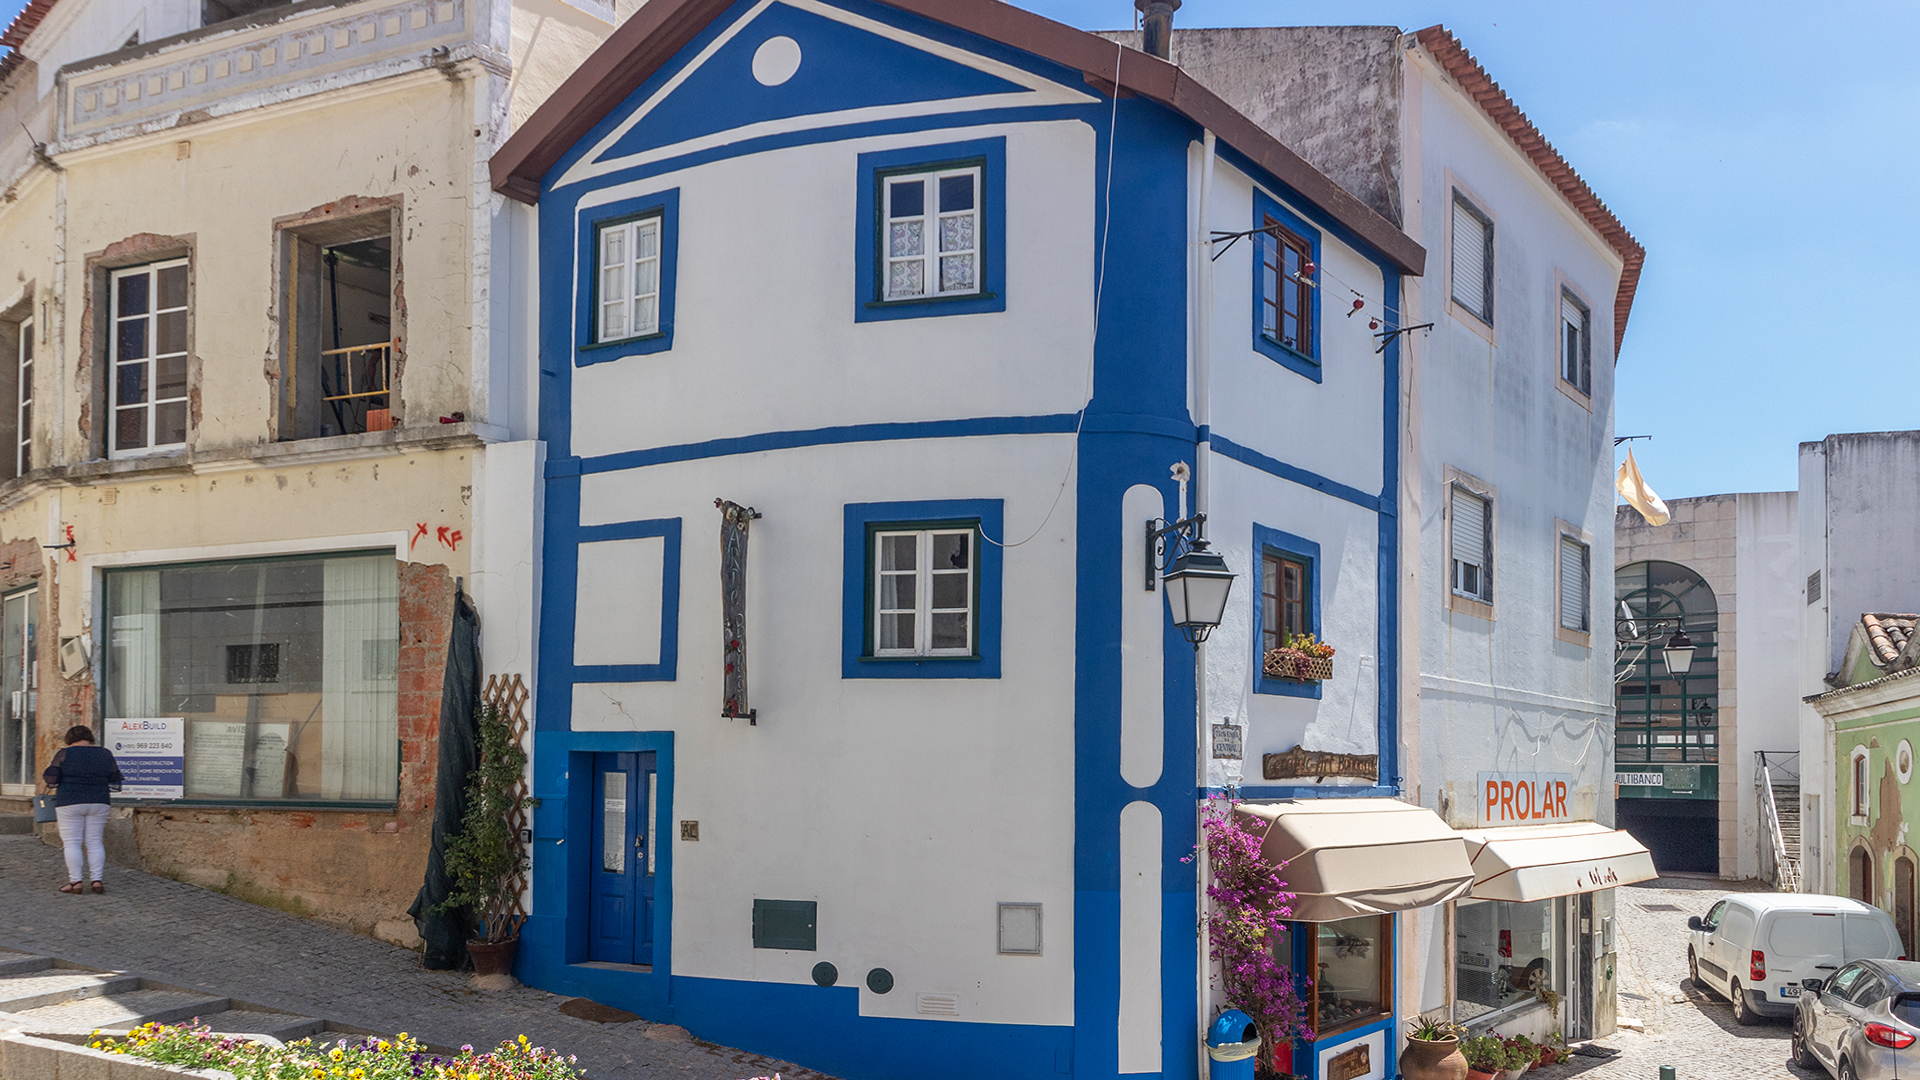 2 Bedroom townhouse with rental license and studio in Monchique town, West Algarve | LG1658 This lovingly renovated traditional townhouse has two storey accommodation and a ground floor commercial space. Perfectly located on a pedestrian street right in the centre of the thriving mountain town.